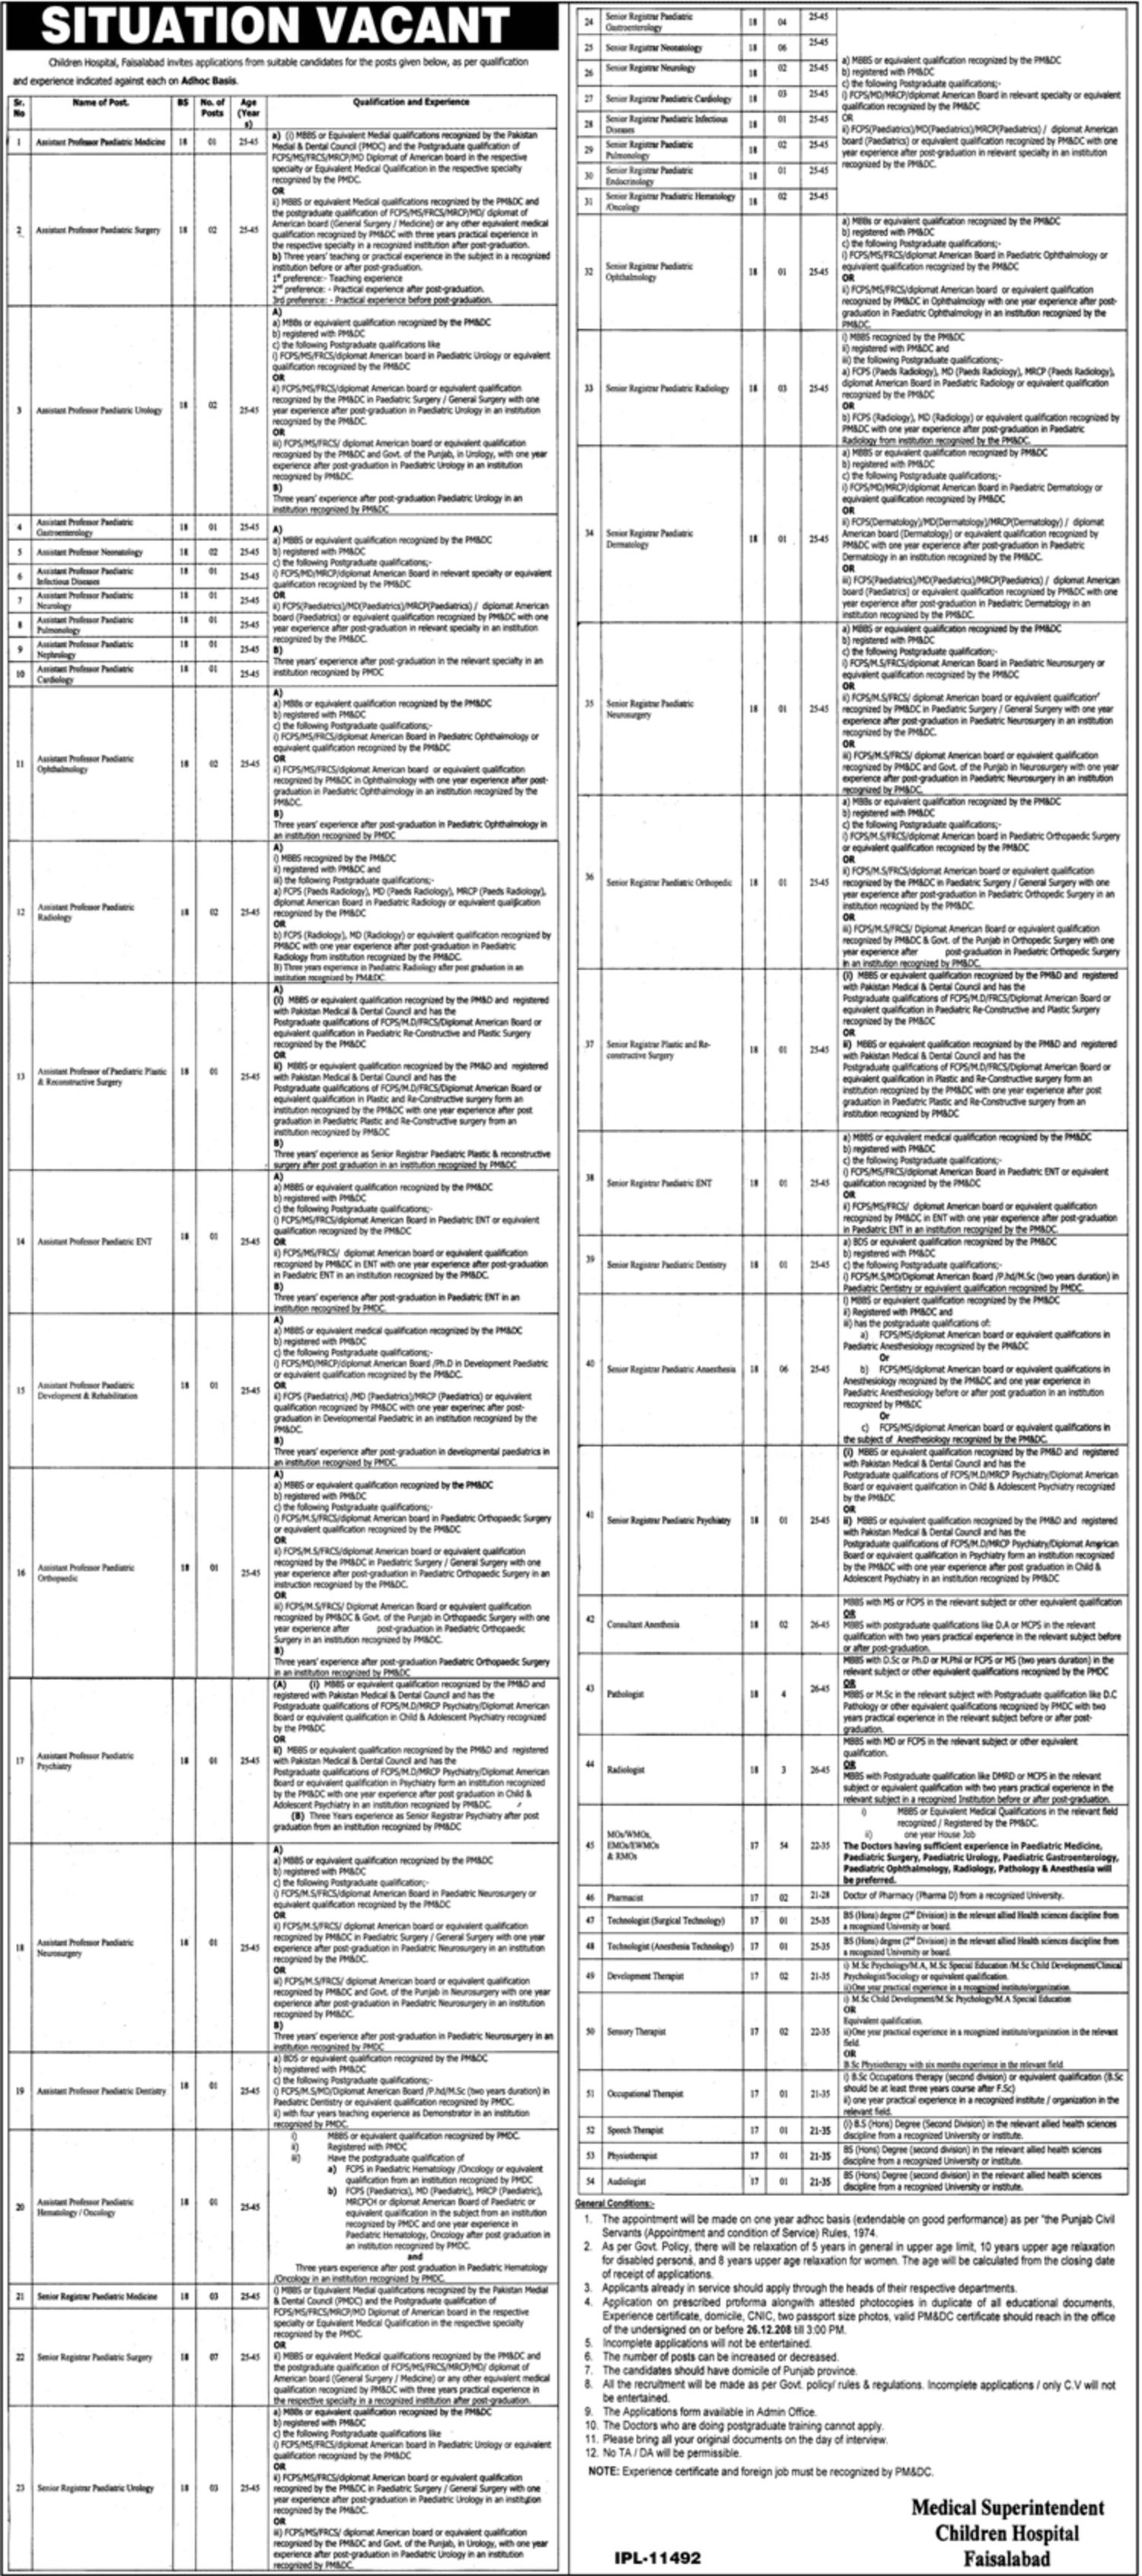 Children Hospital Faisalabad Jobs 2018